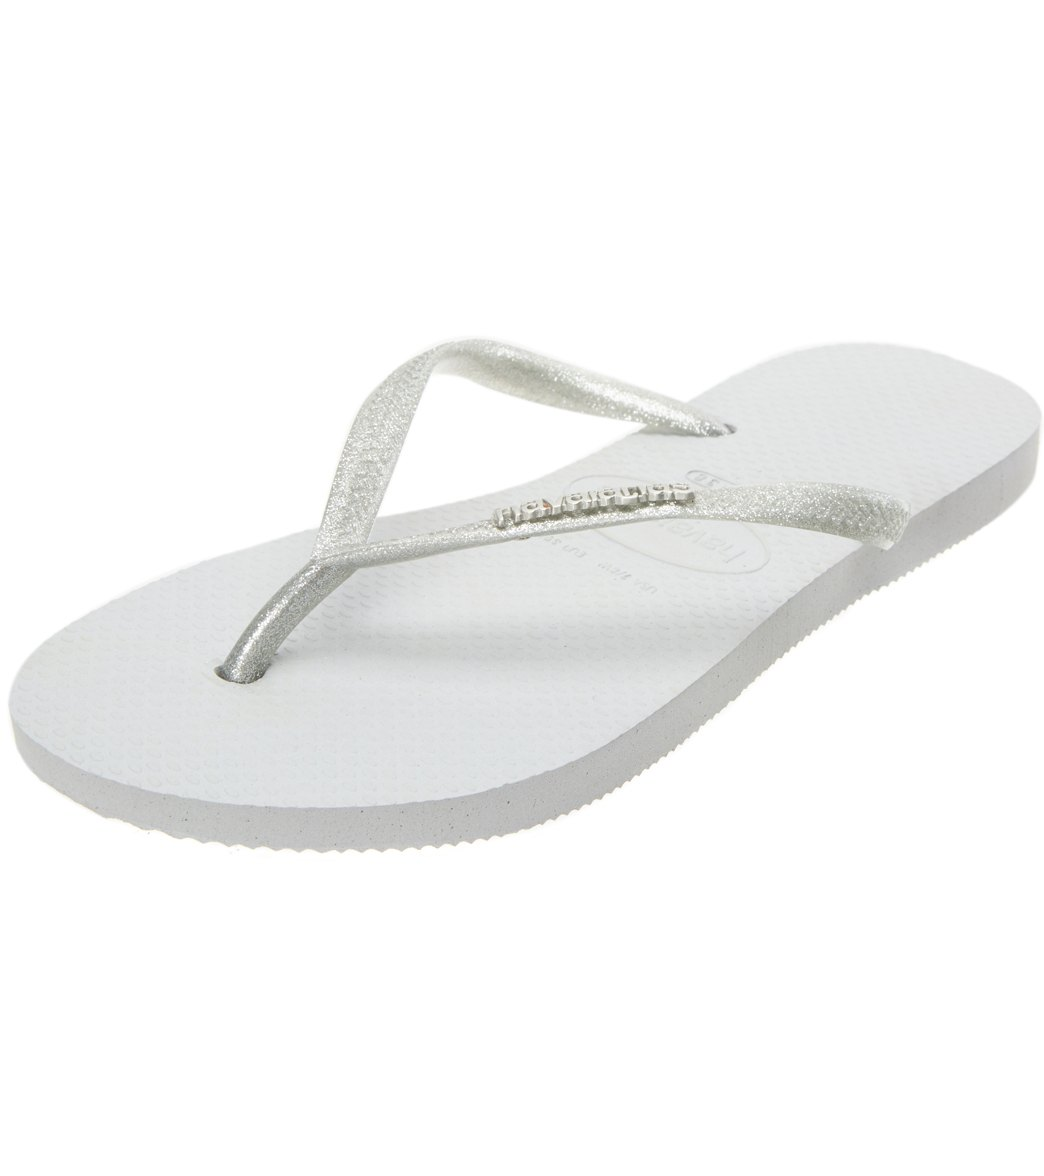 c1a9df5dbbf67 Havaianas Women s Slim Logo Metallic Flip Flop at SwimOutlet.com